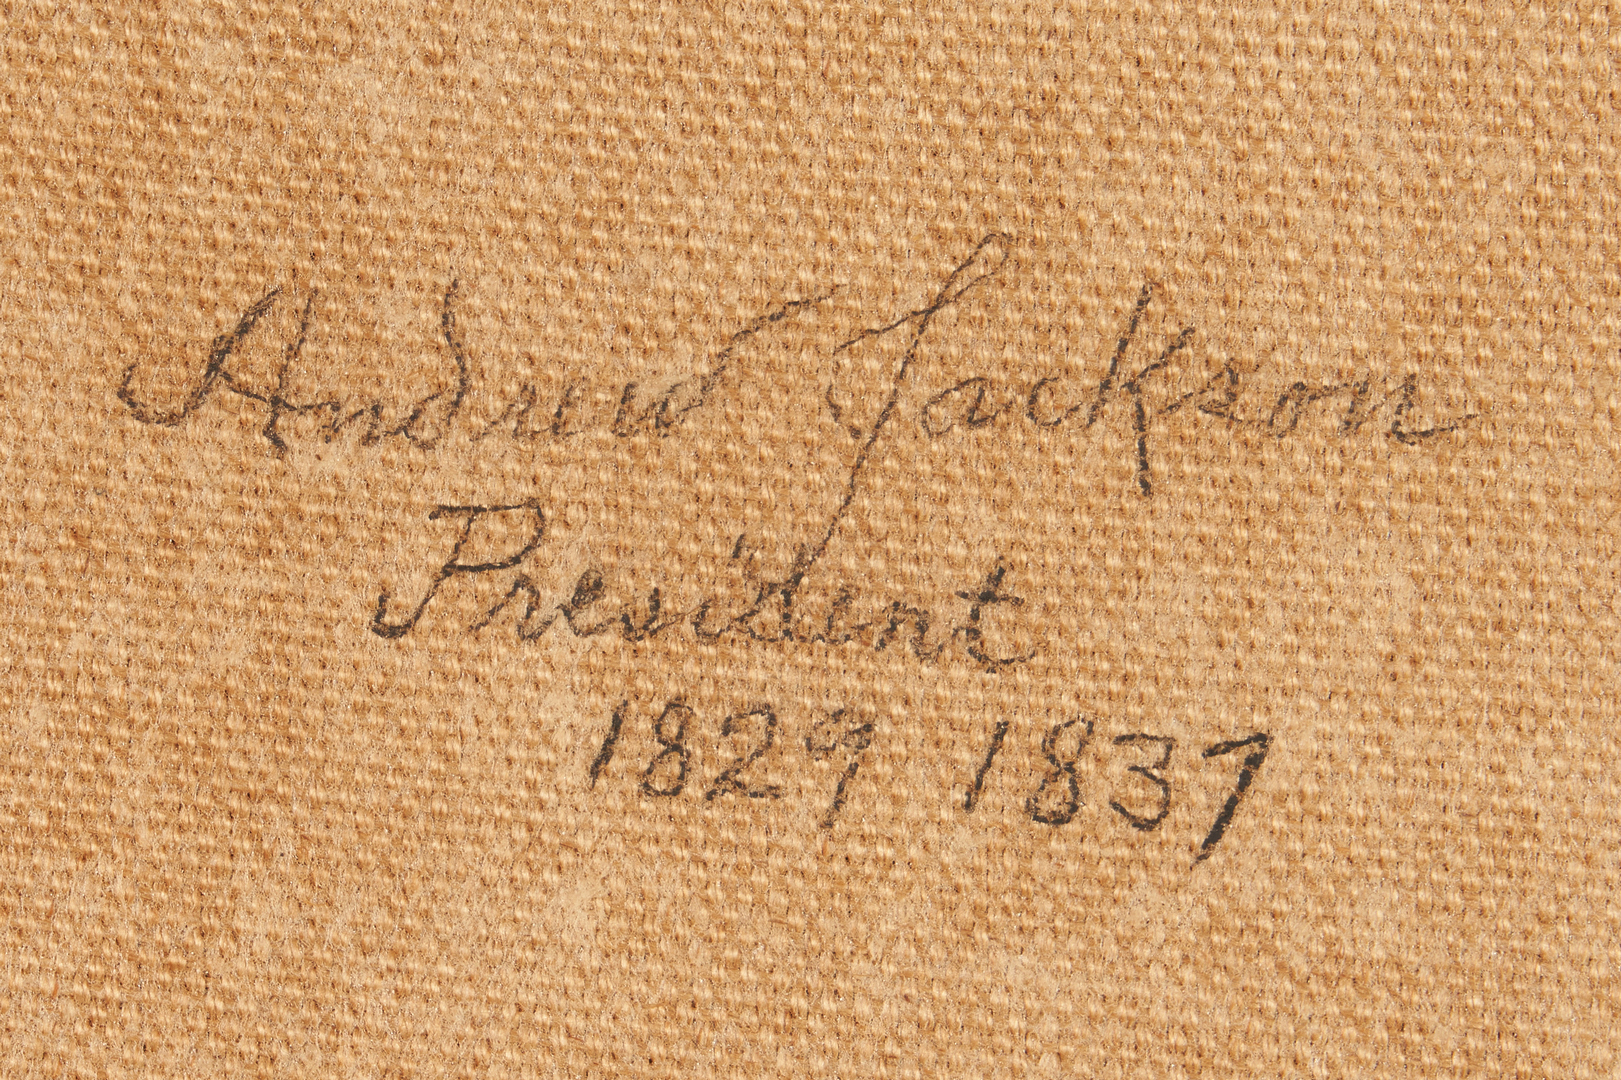 Lot 598: 19th century Portrait of Andrew Jackson